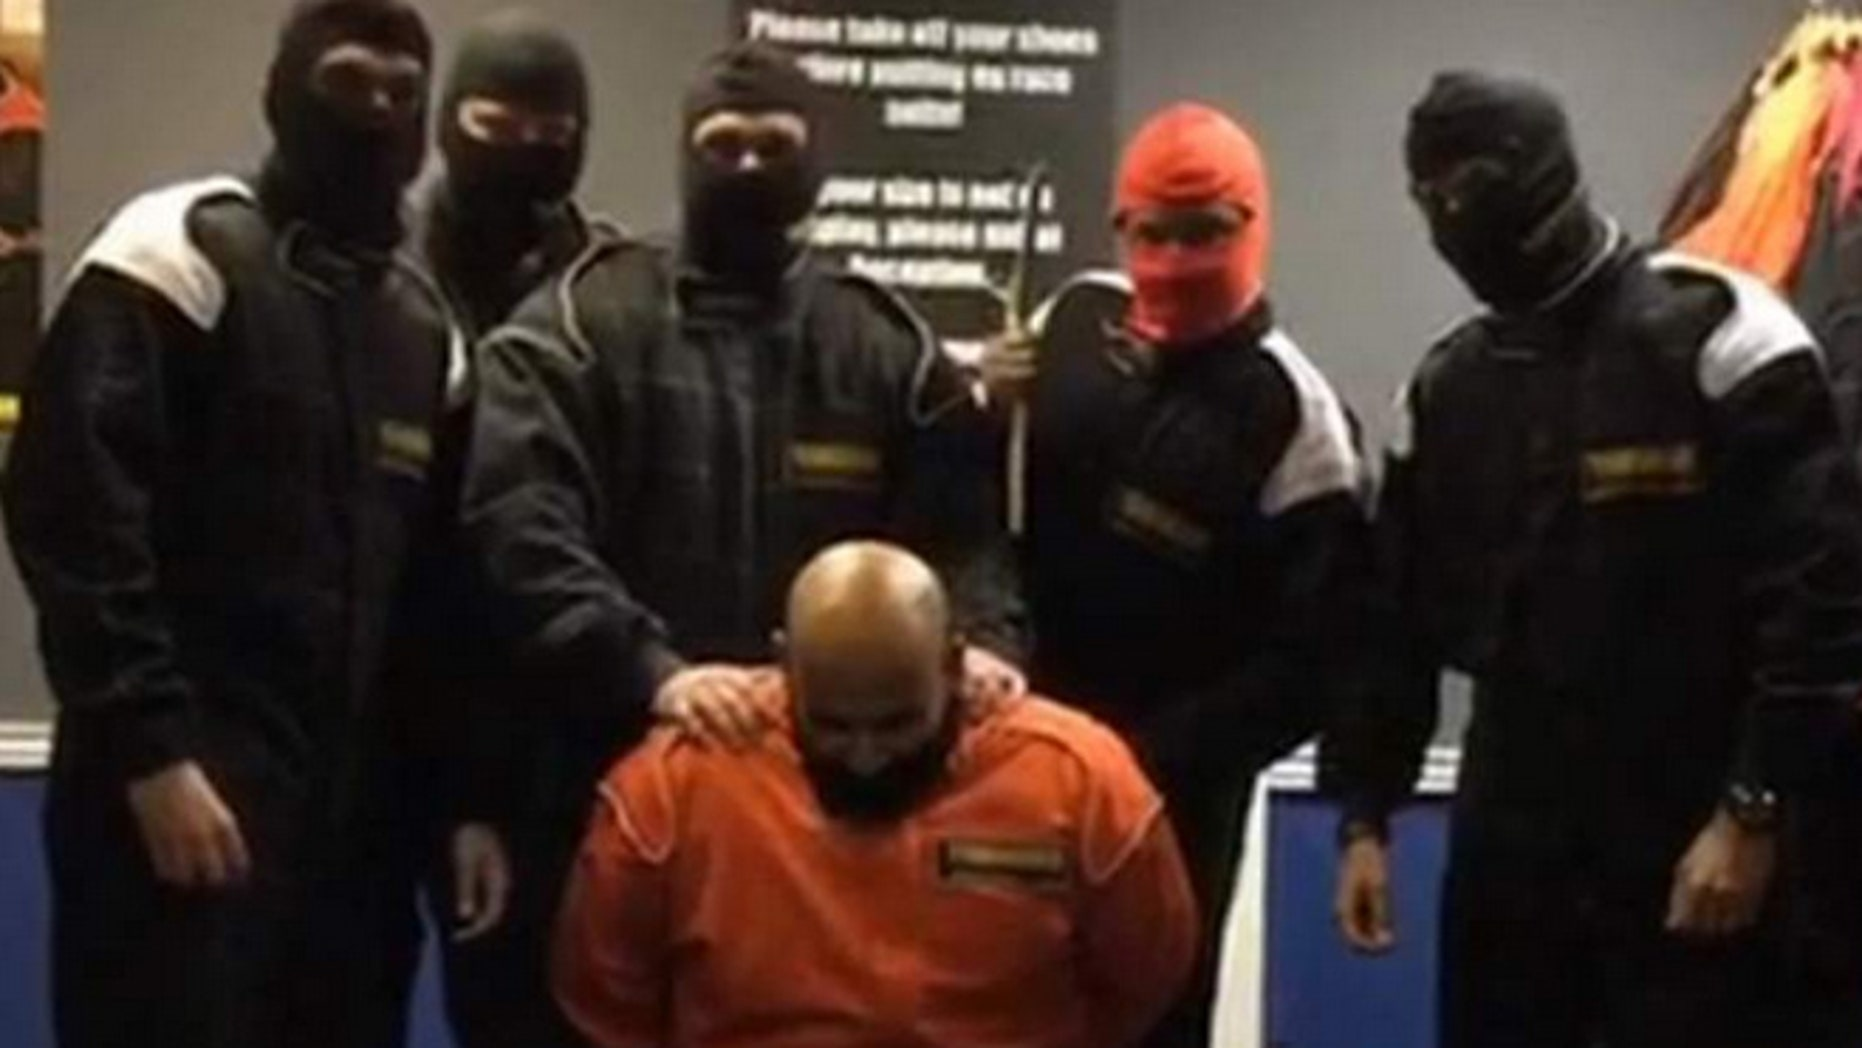 Six staff from HSBC were fired after a video appeared online showing them taking part in a mock Islamic State style killing.